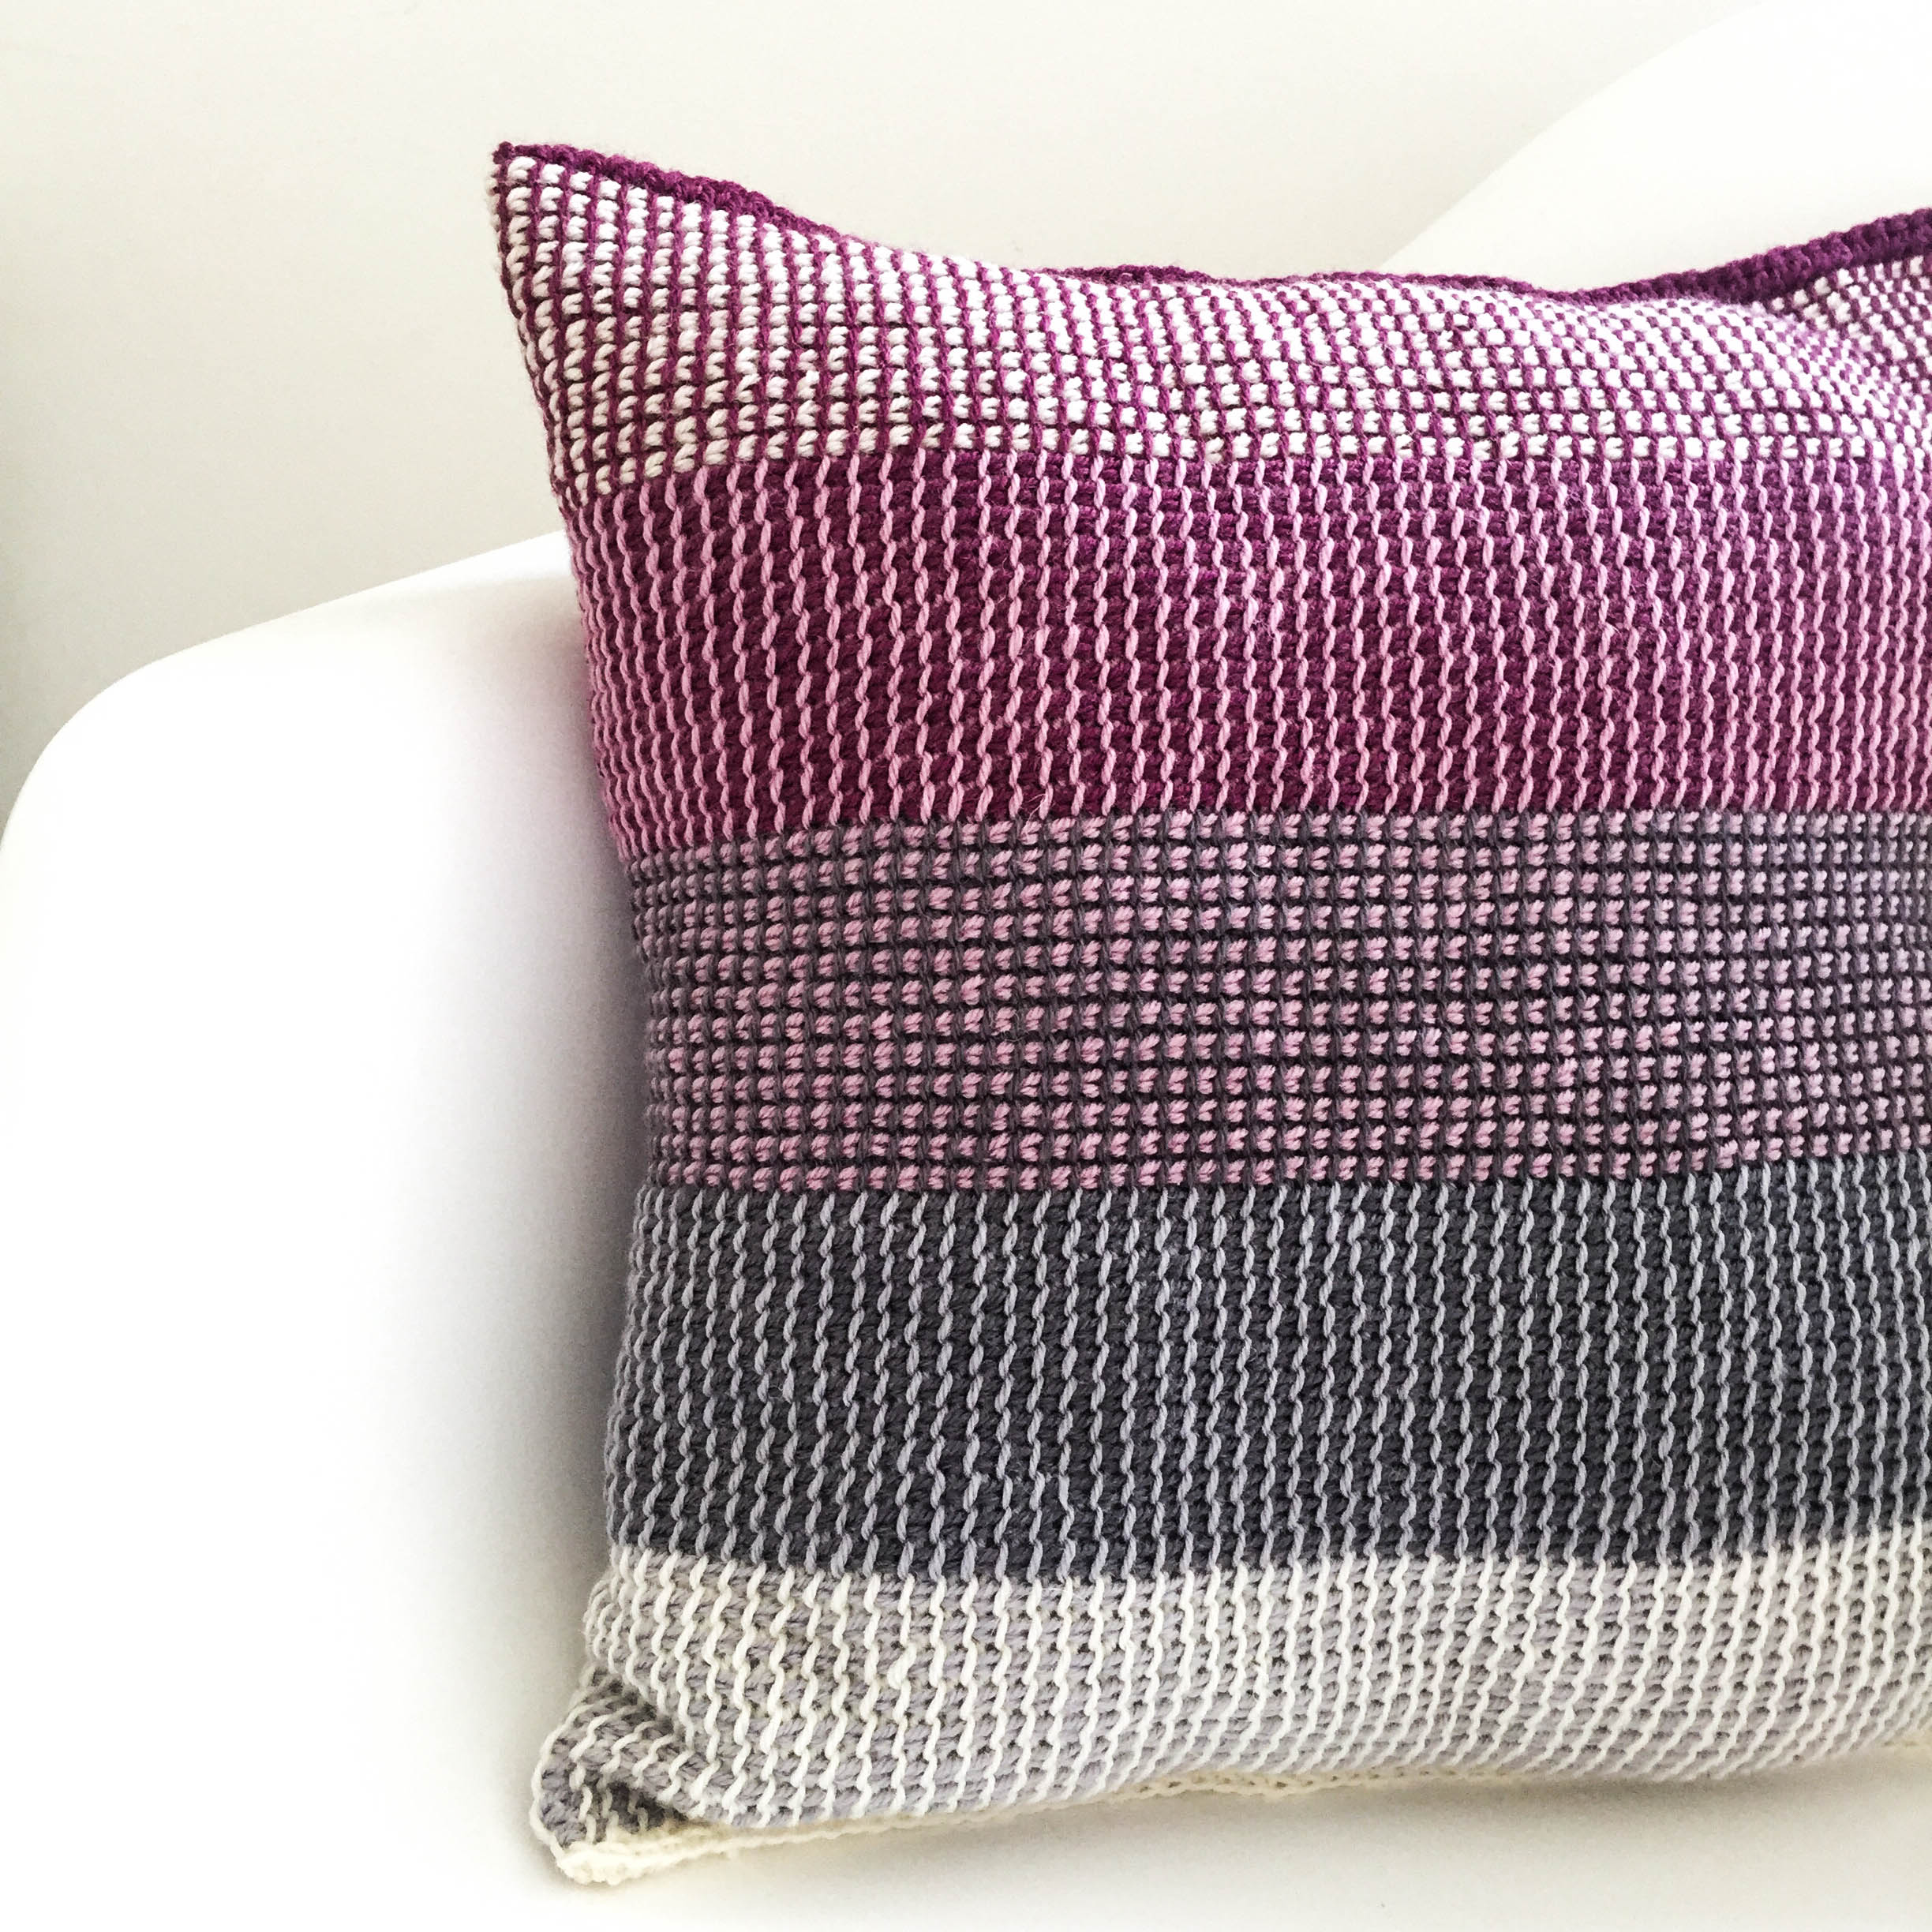 Tunisian Cushion – 't Voorpand